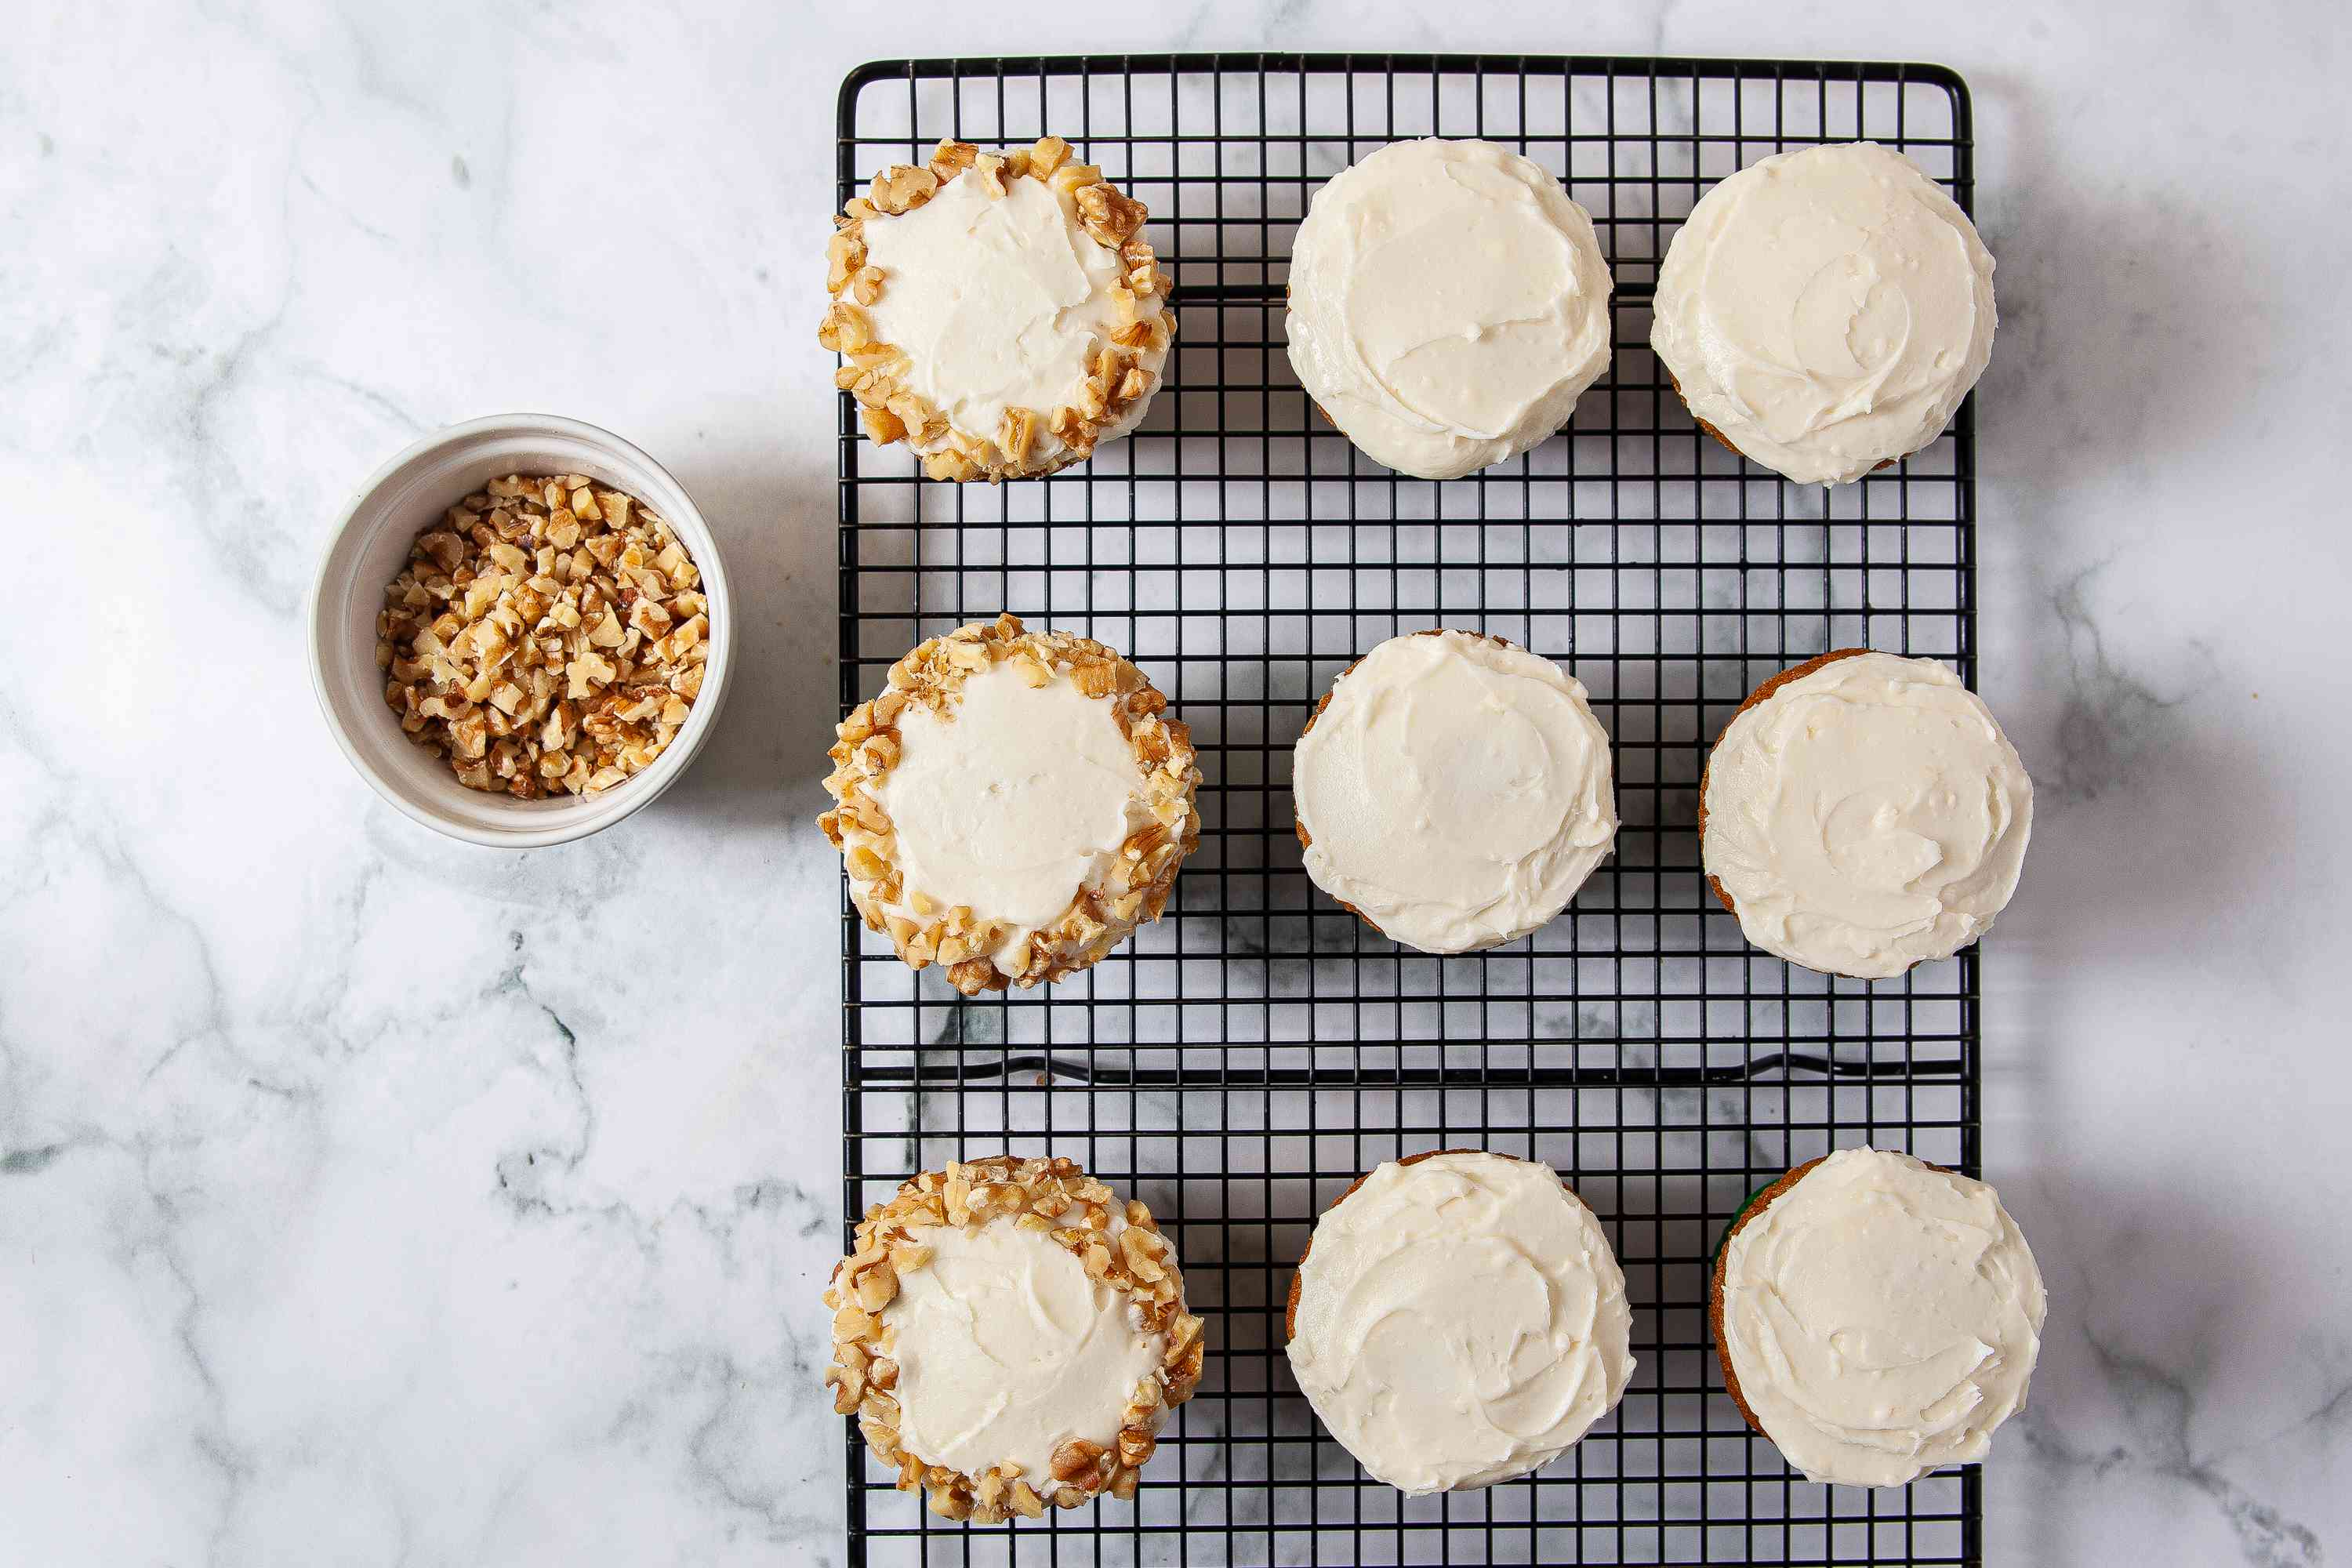 Frosted Carrot Cake Cupcakes with nuts